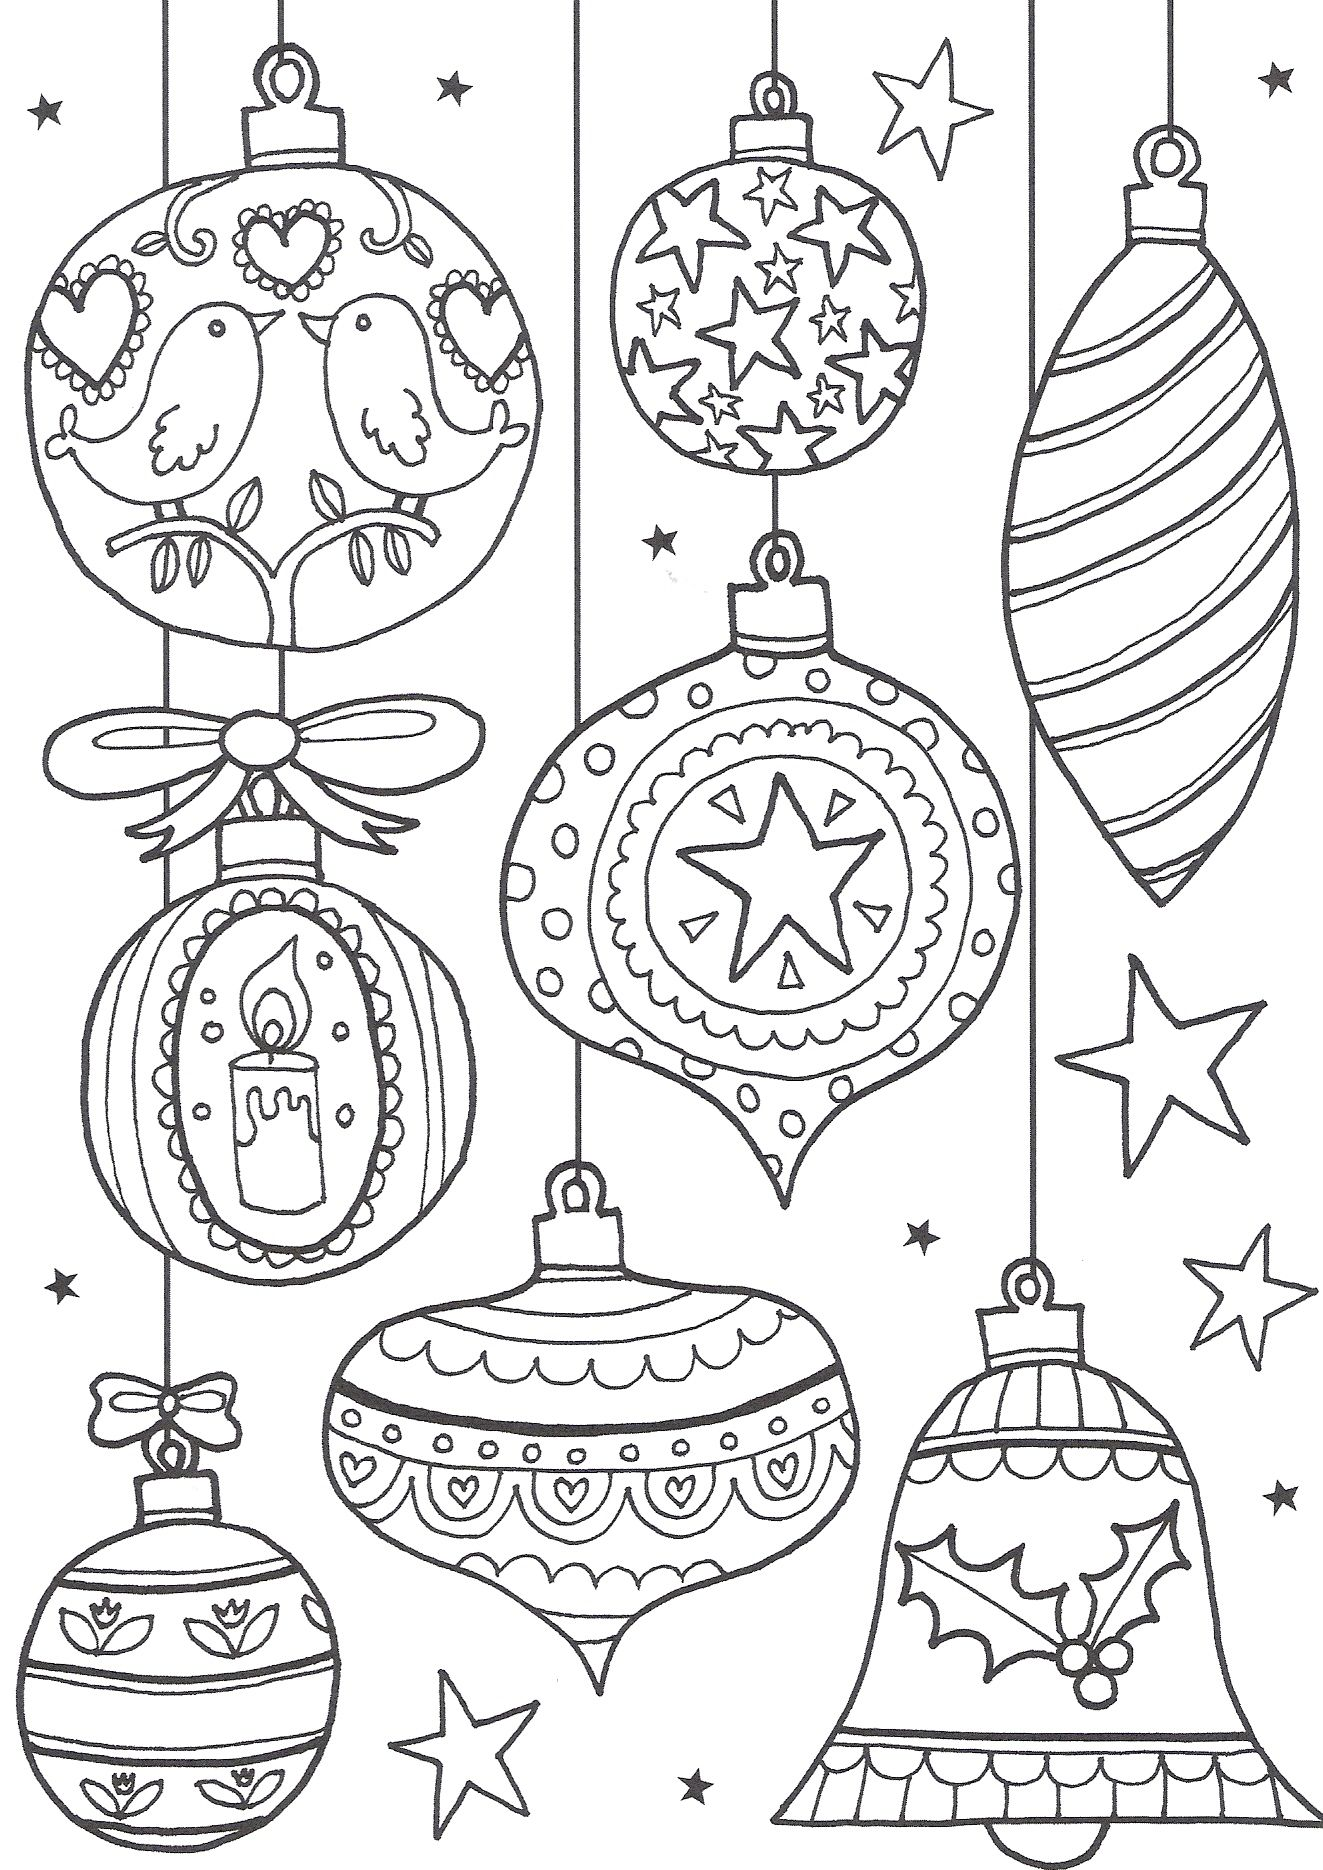 Christmas Coloring Games To Play Online With Free Colouring Pages For Adults The Ultimate Roundup